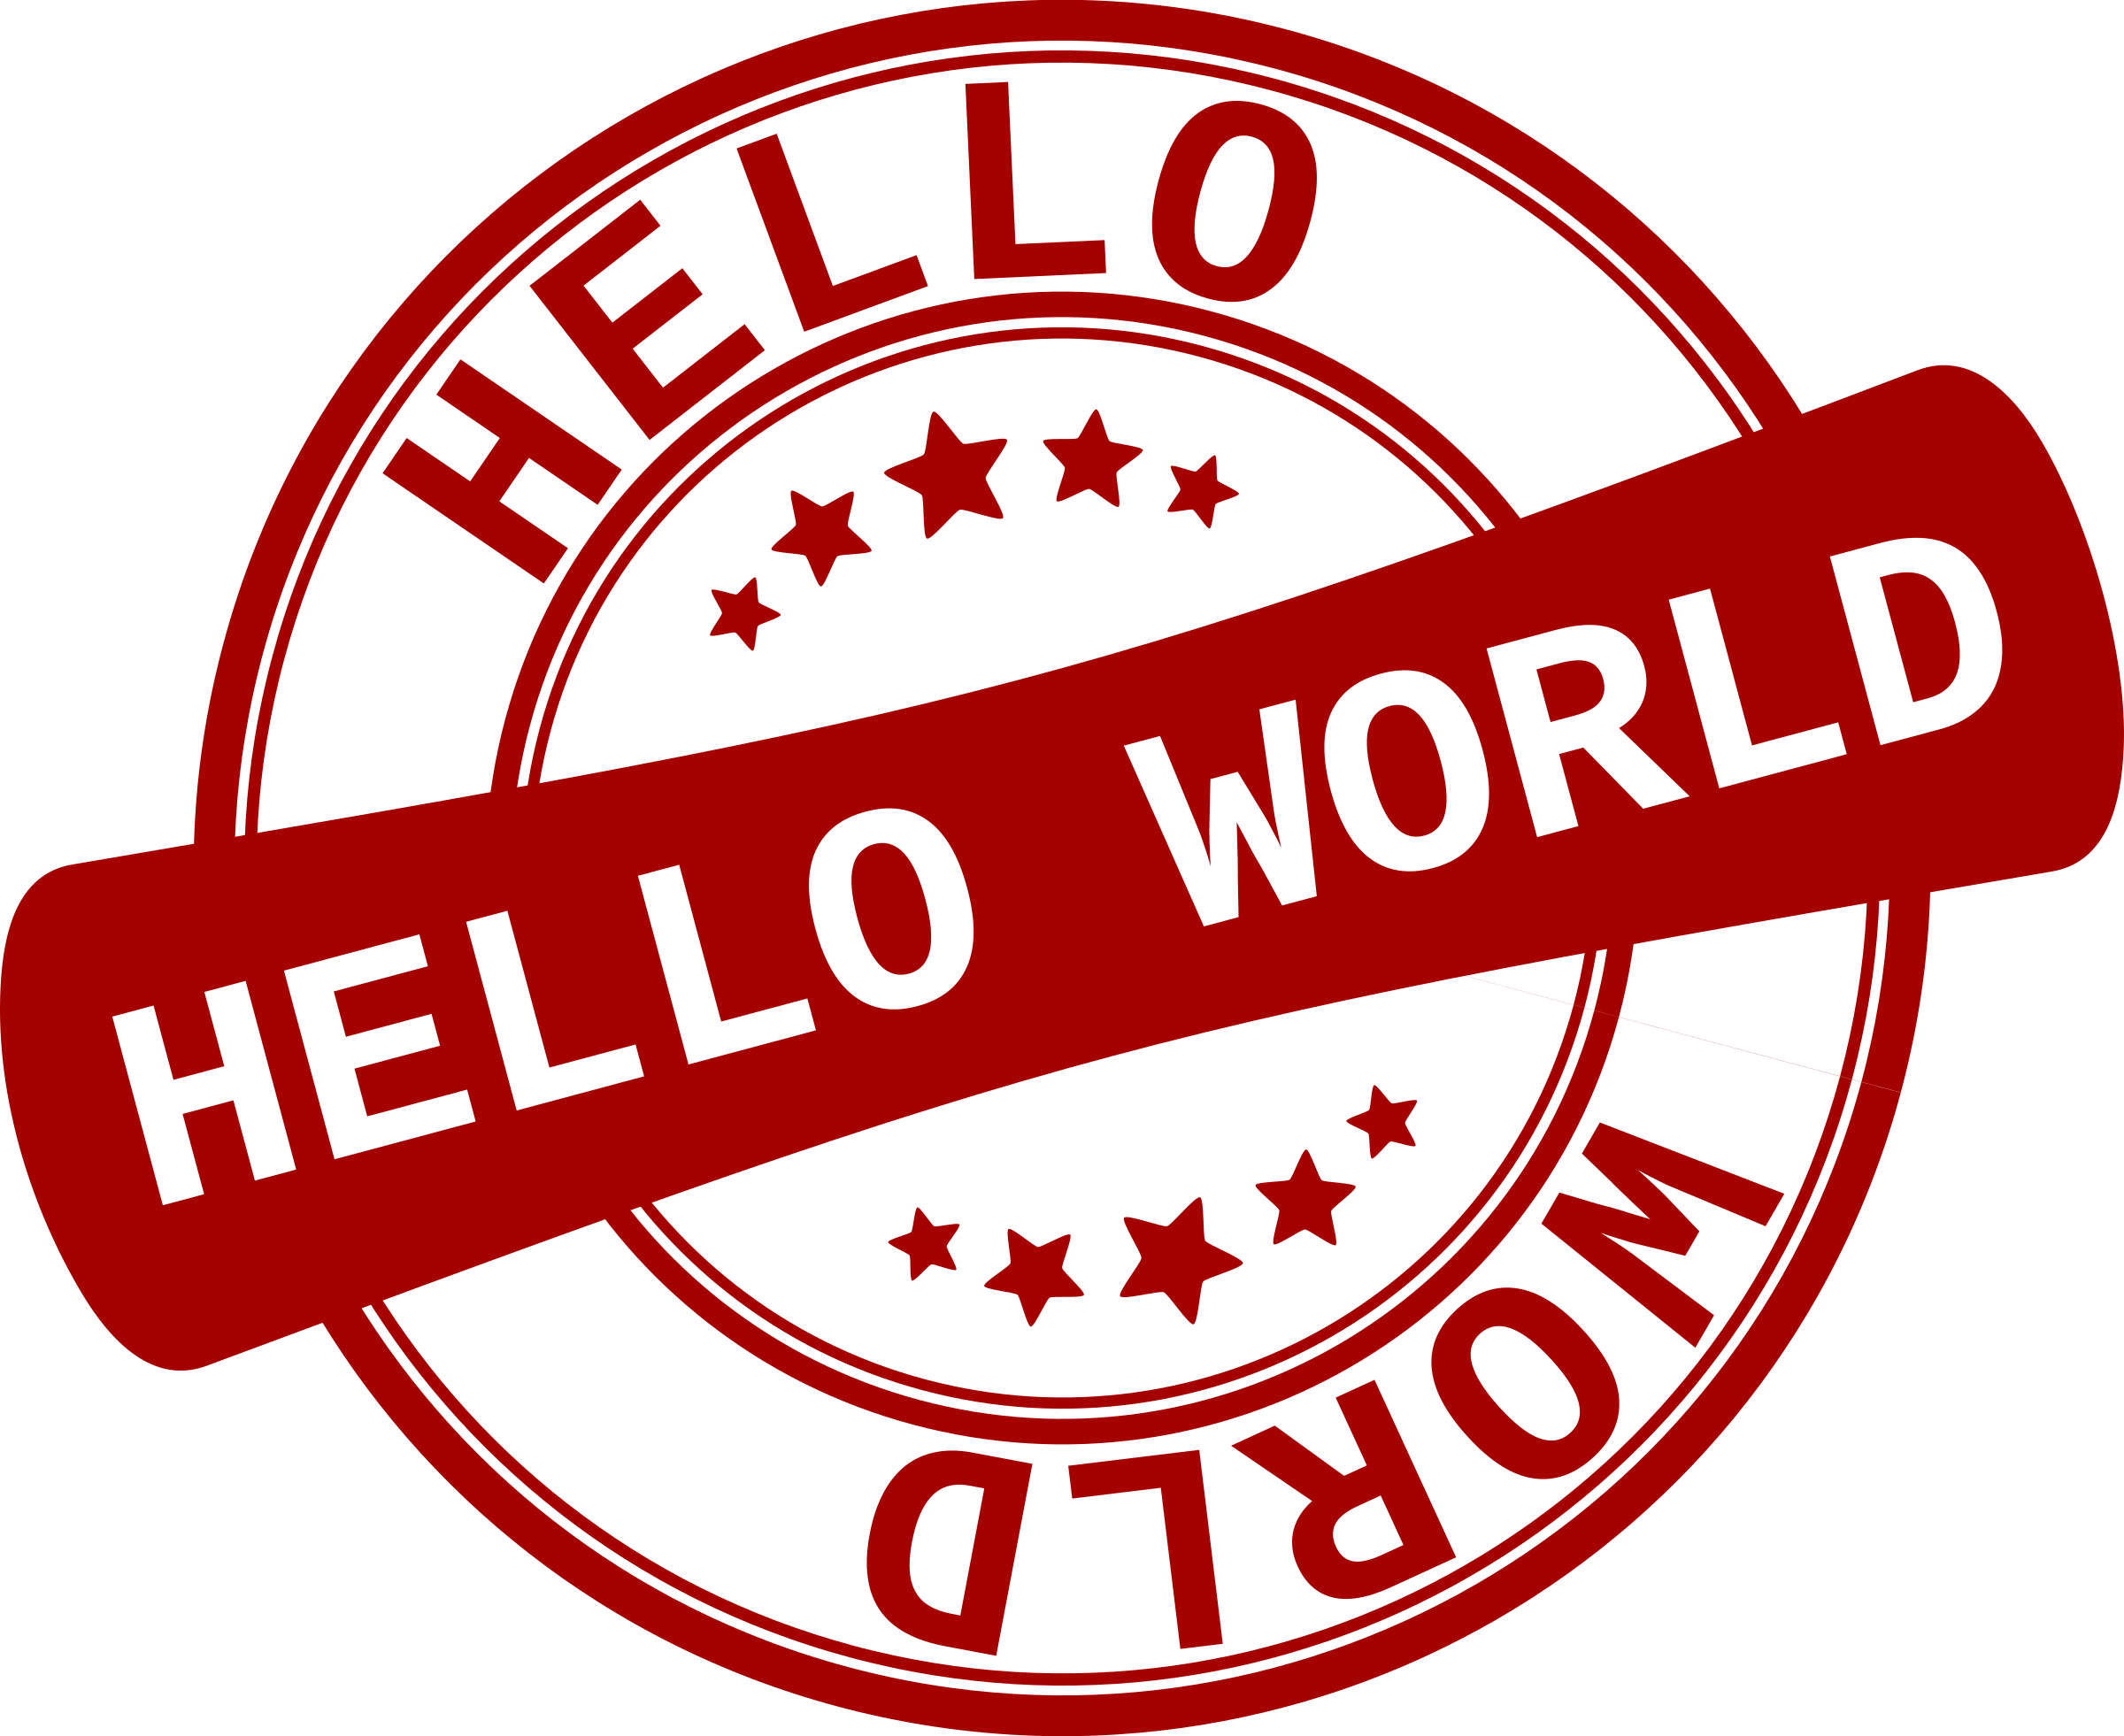 Label Hello World by jean_victor_balin